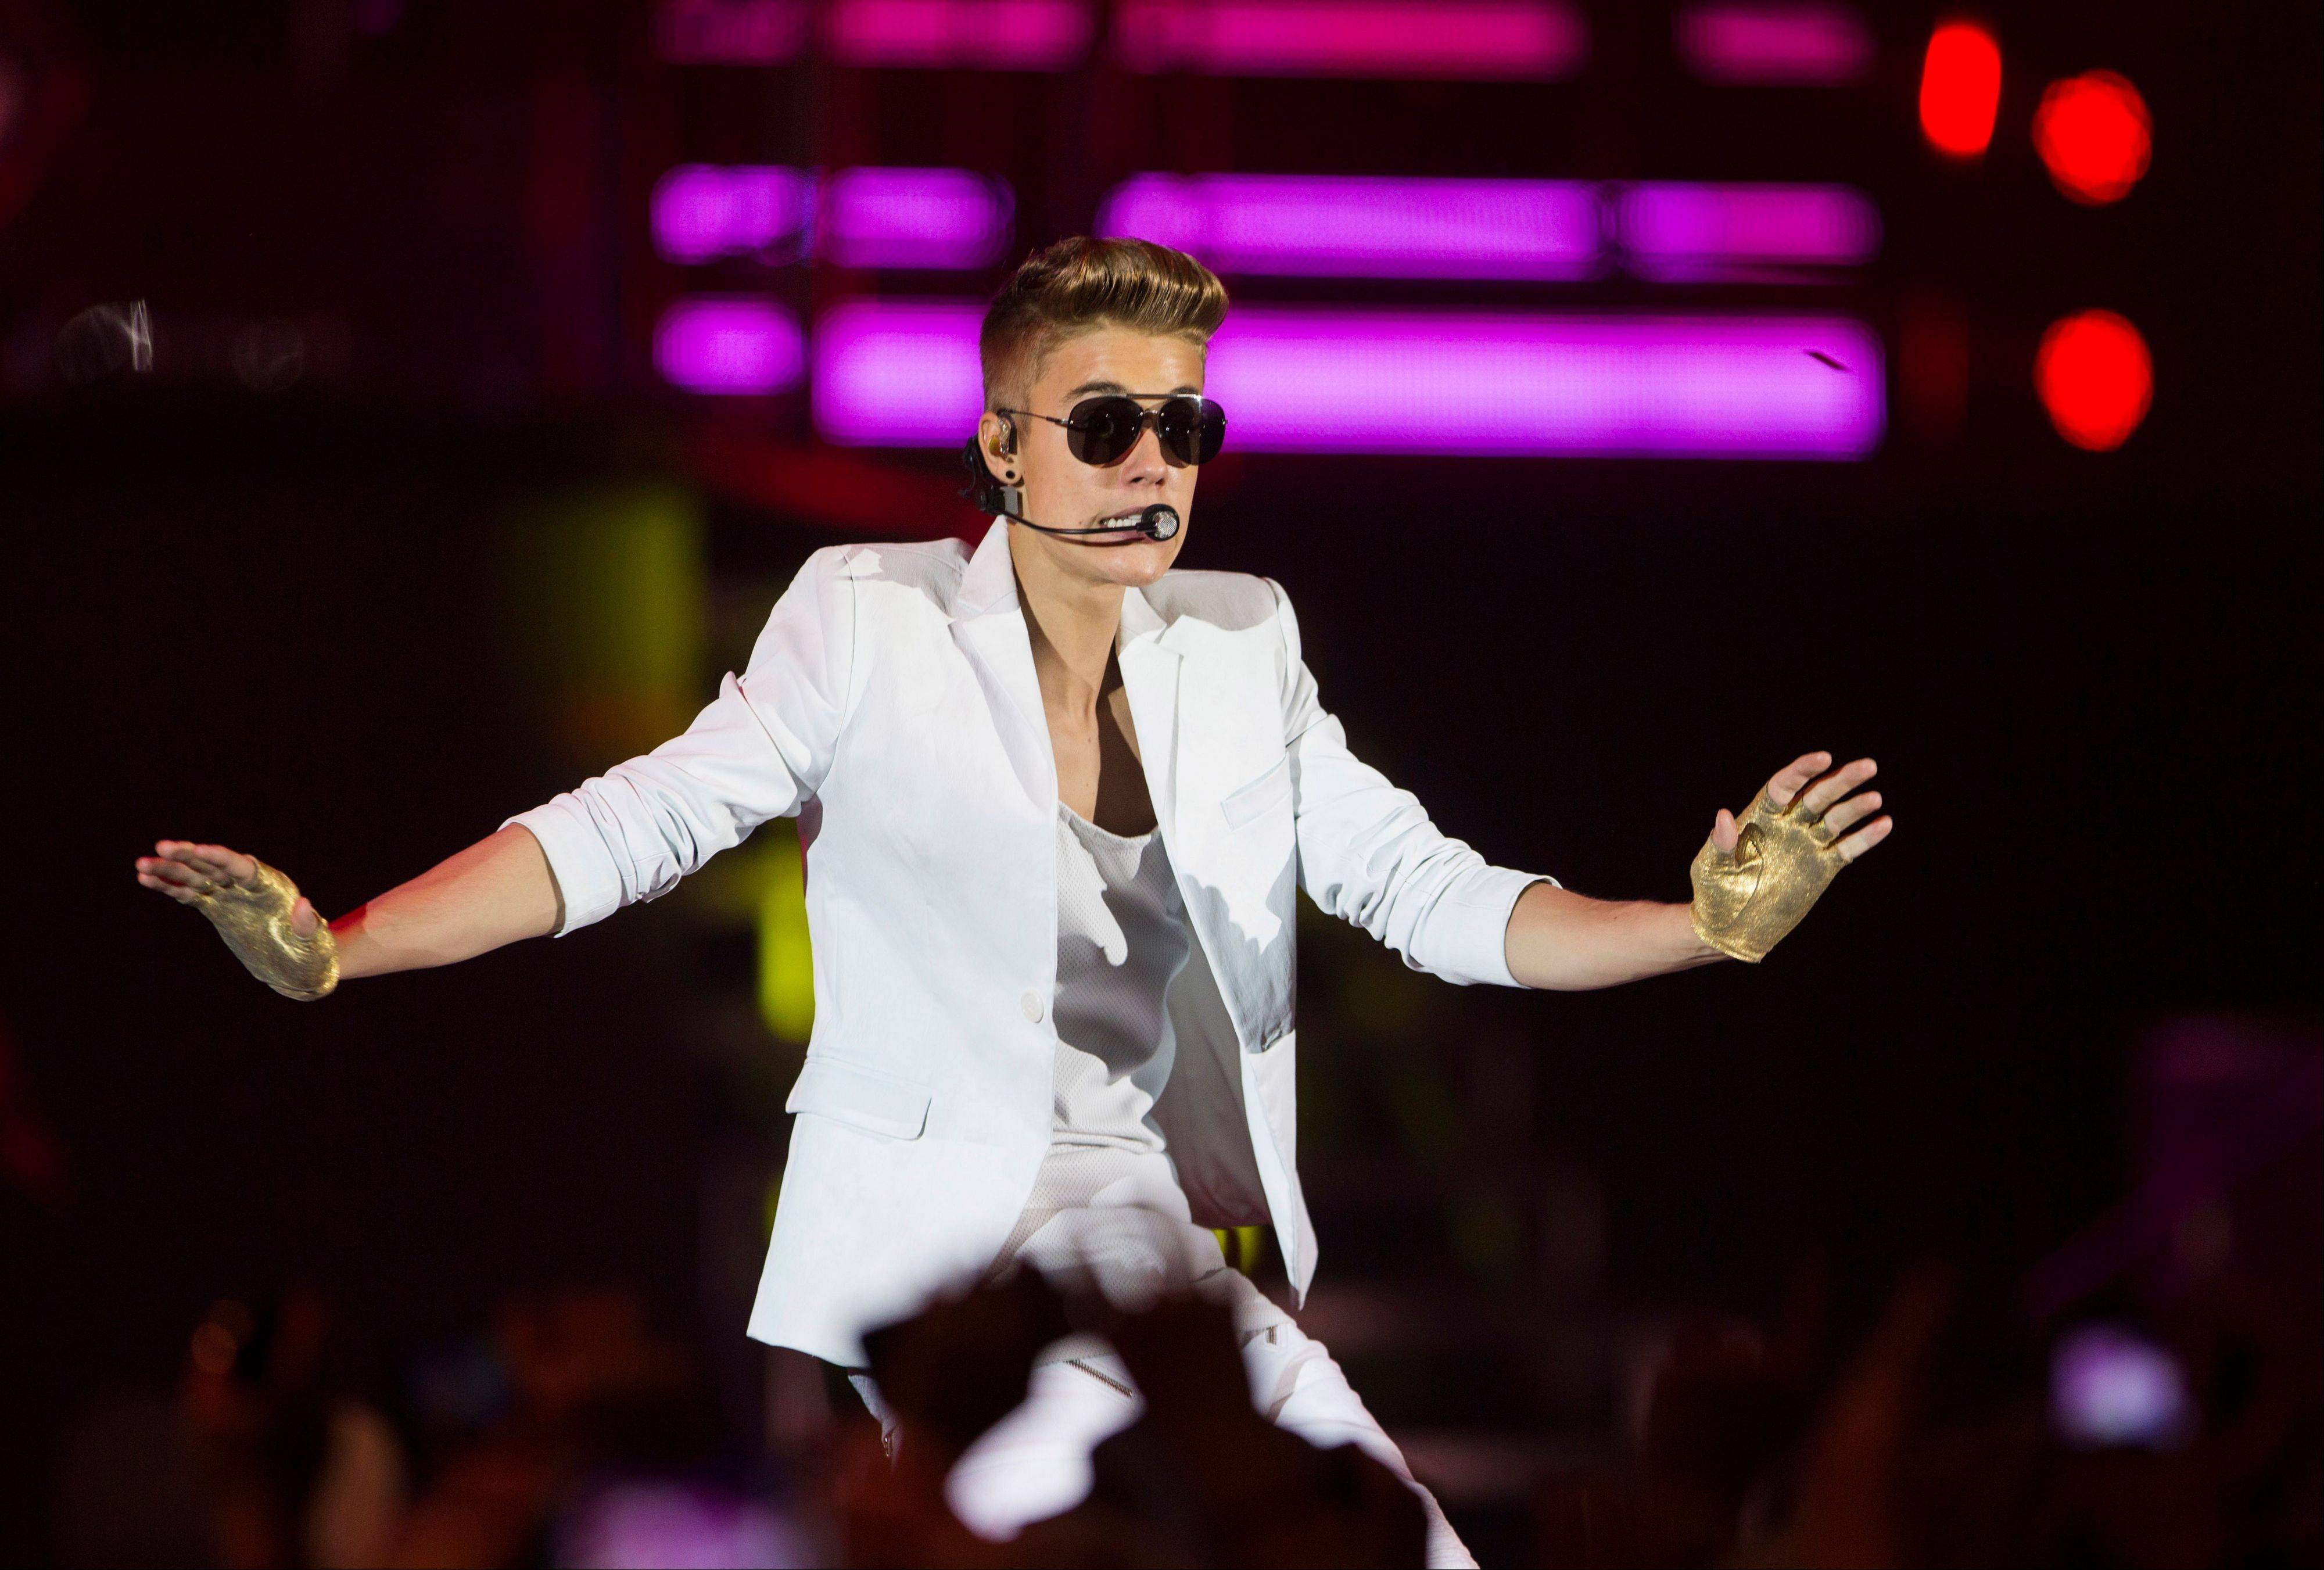 Swedish police say they have found drugs on board a tour bus used by Canadian pop singer Justin Bieber.